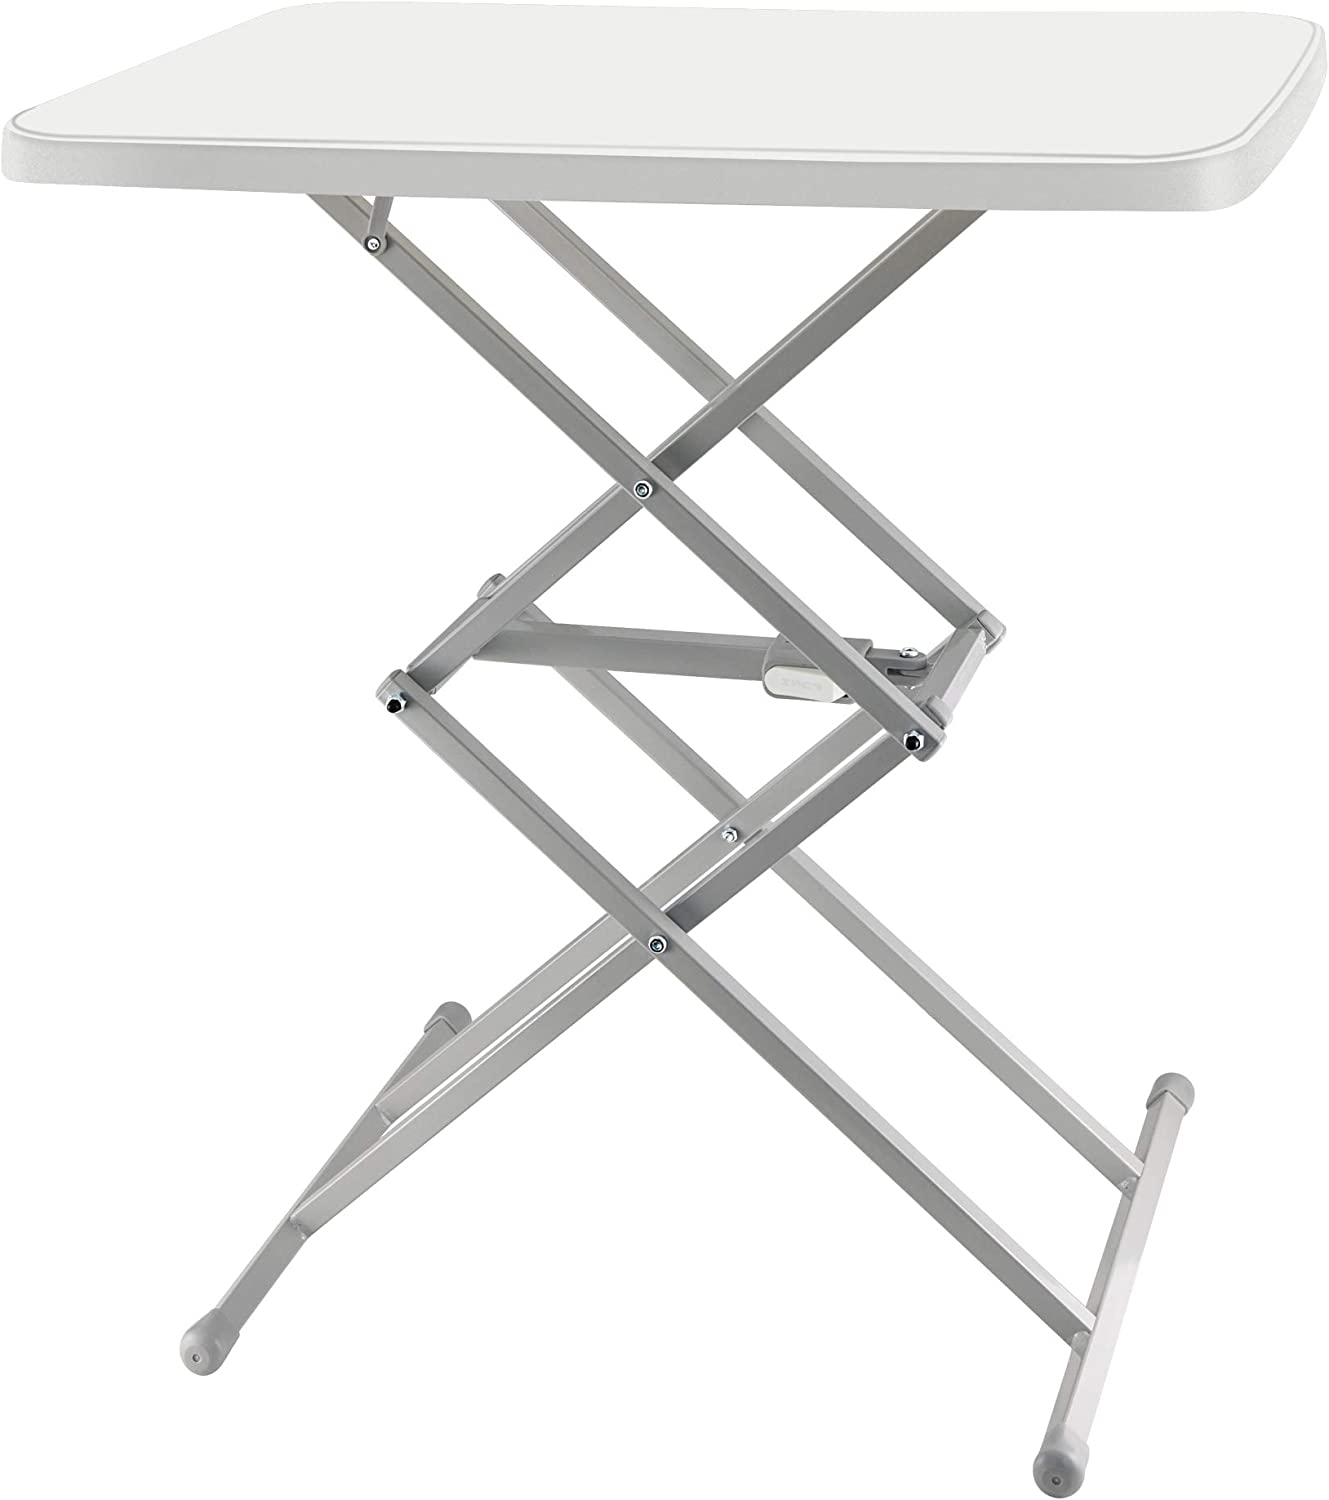 SOUNDANCE Adjustable Folding Table, Lightweight and Portable TV Tray, Sturdy Dinner Tables for Eating, Easy to Fold and Put Away, Zero Assembly Required Desk for Indoor and Outdoor Use, White